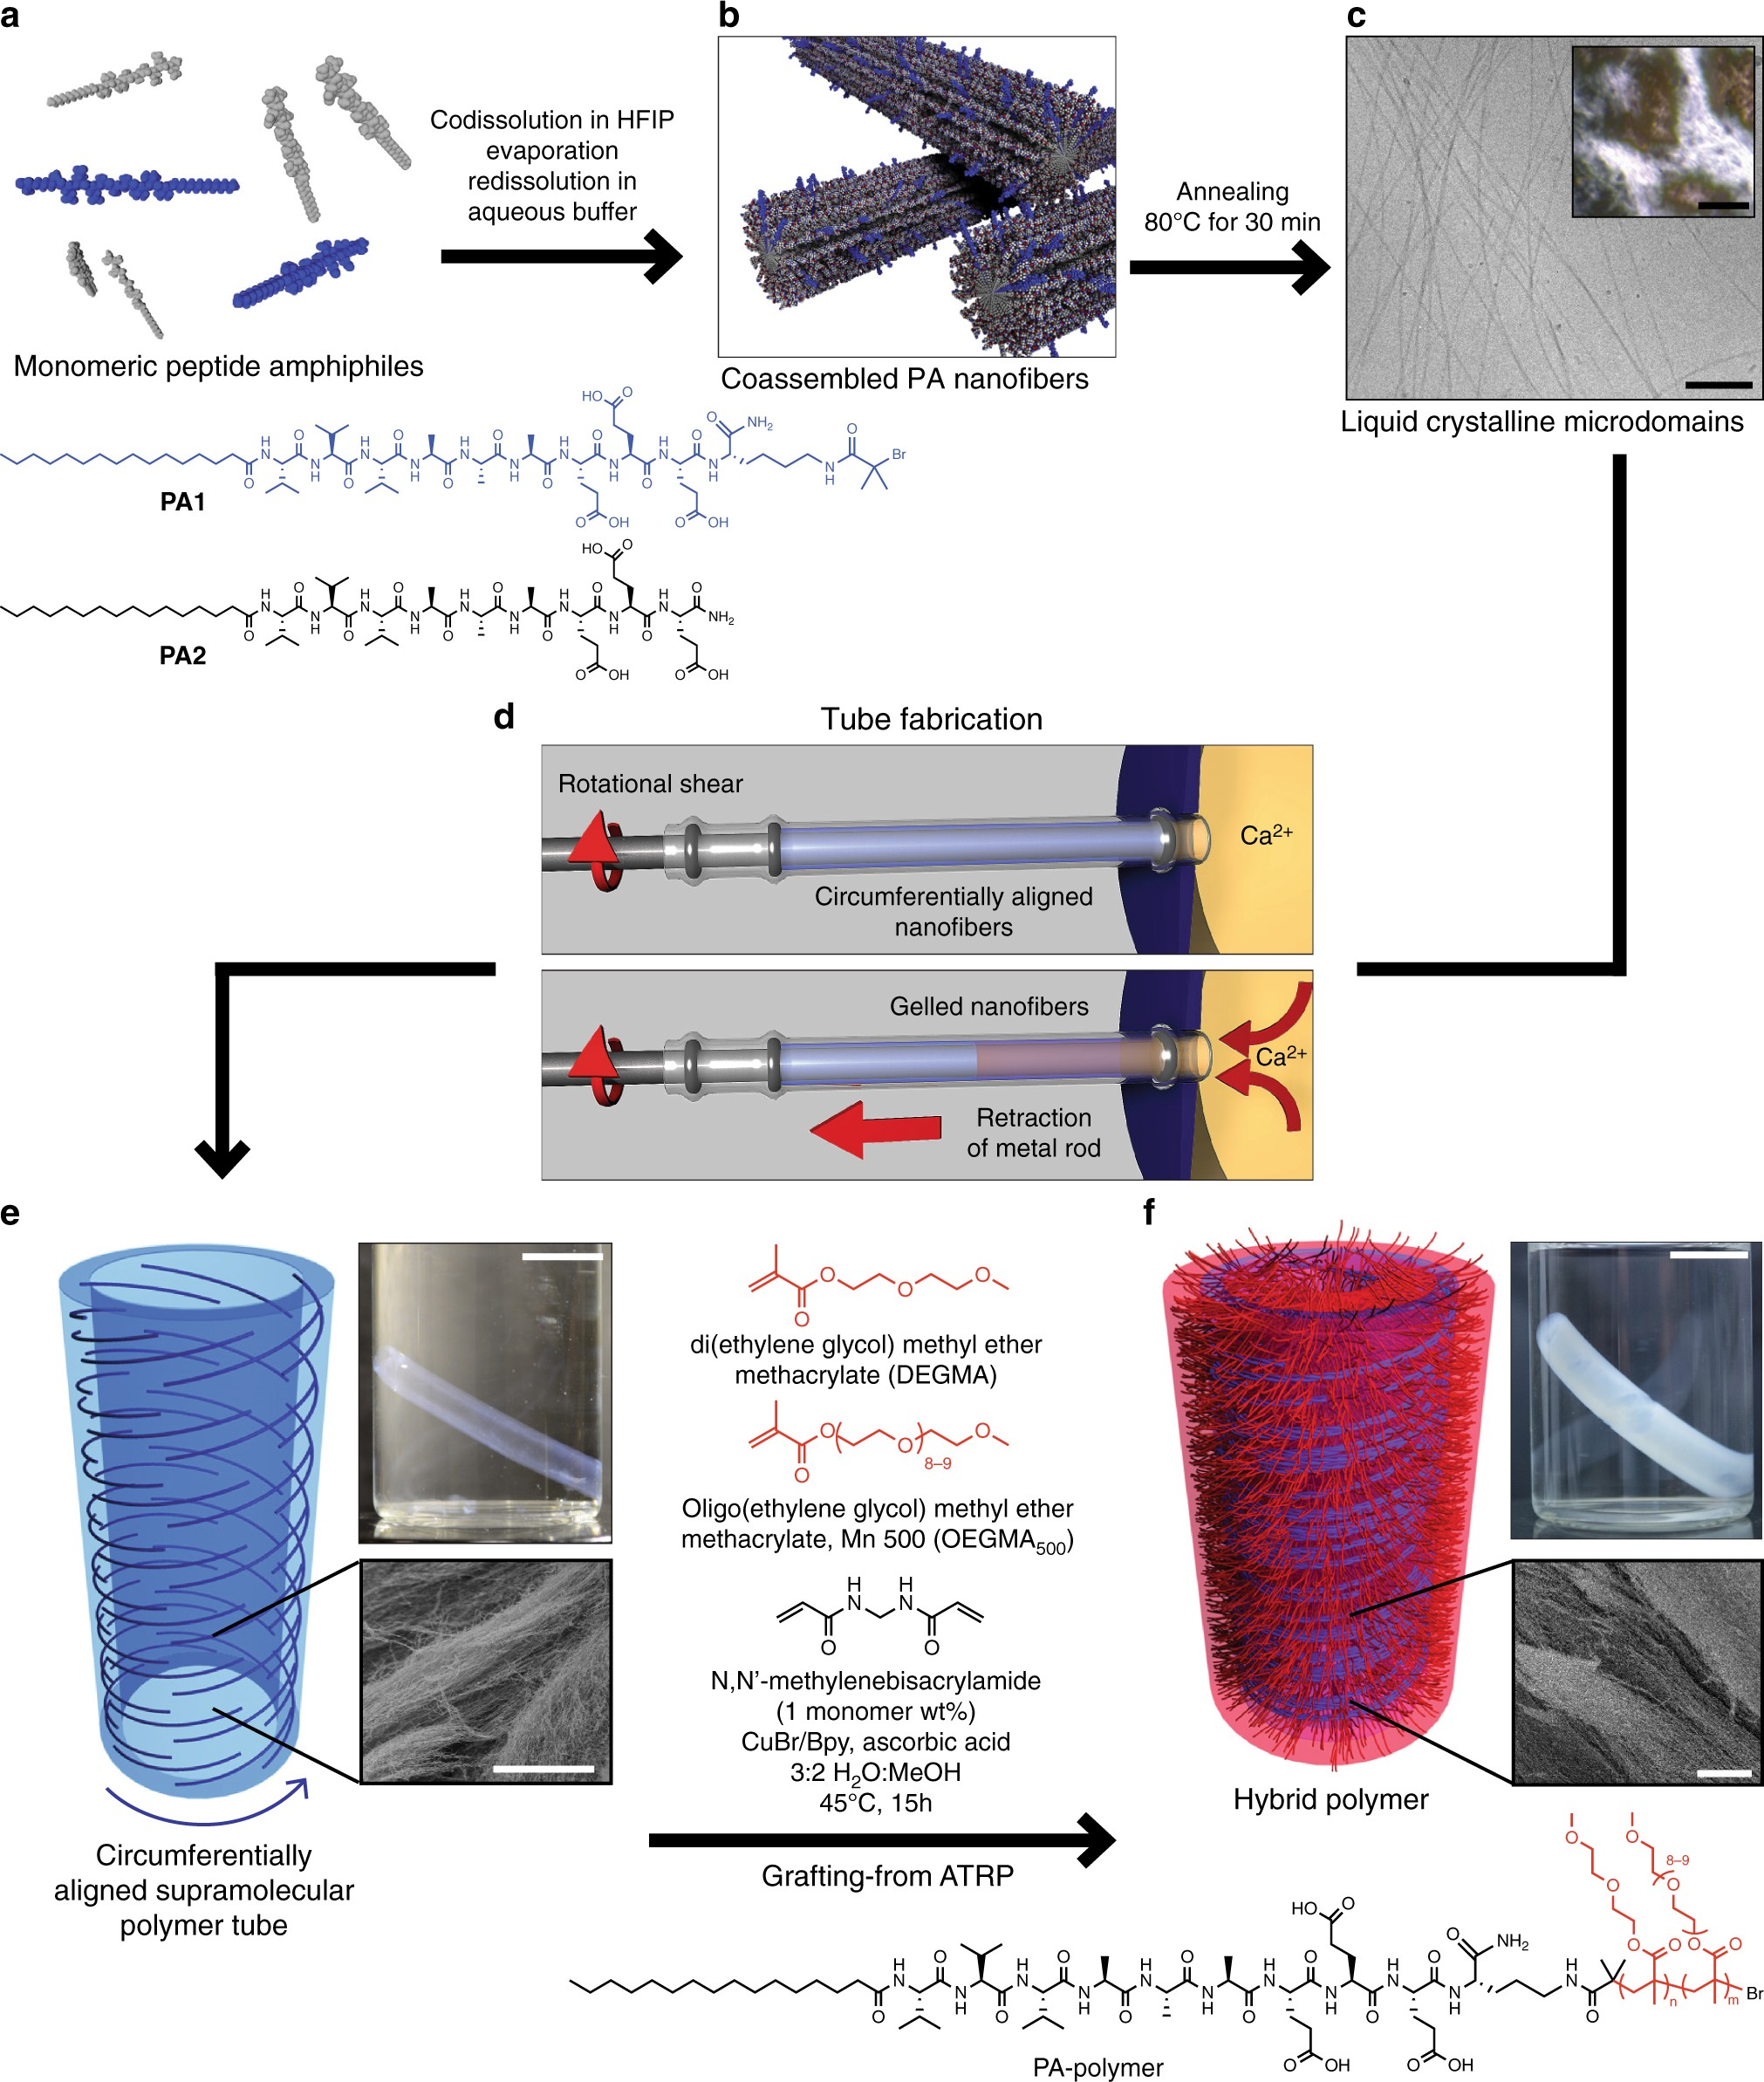 covalent-supramolecular hybrid polymers as muscle-inspired anisotropic  actuators | nature communications